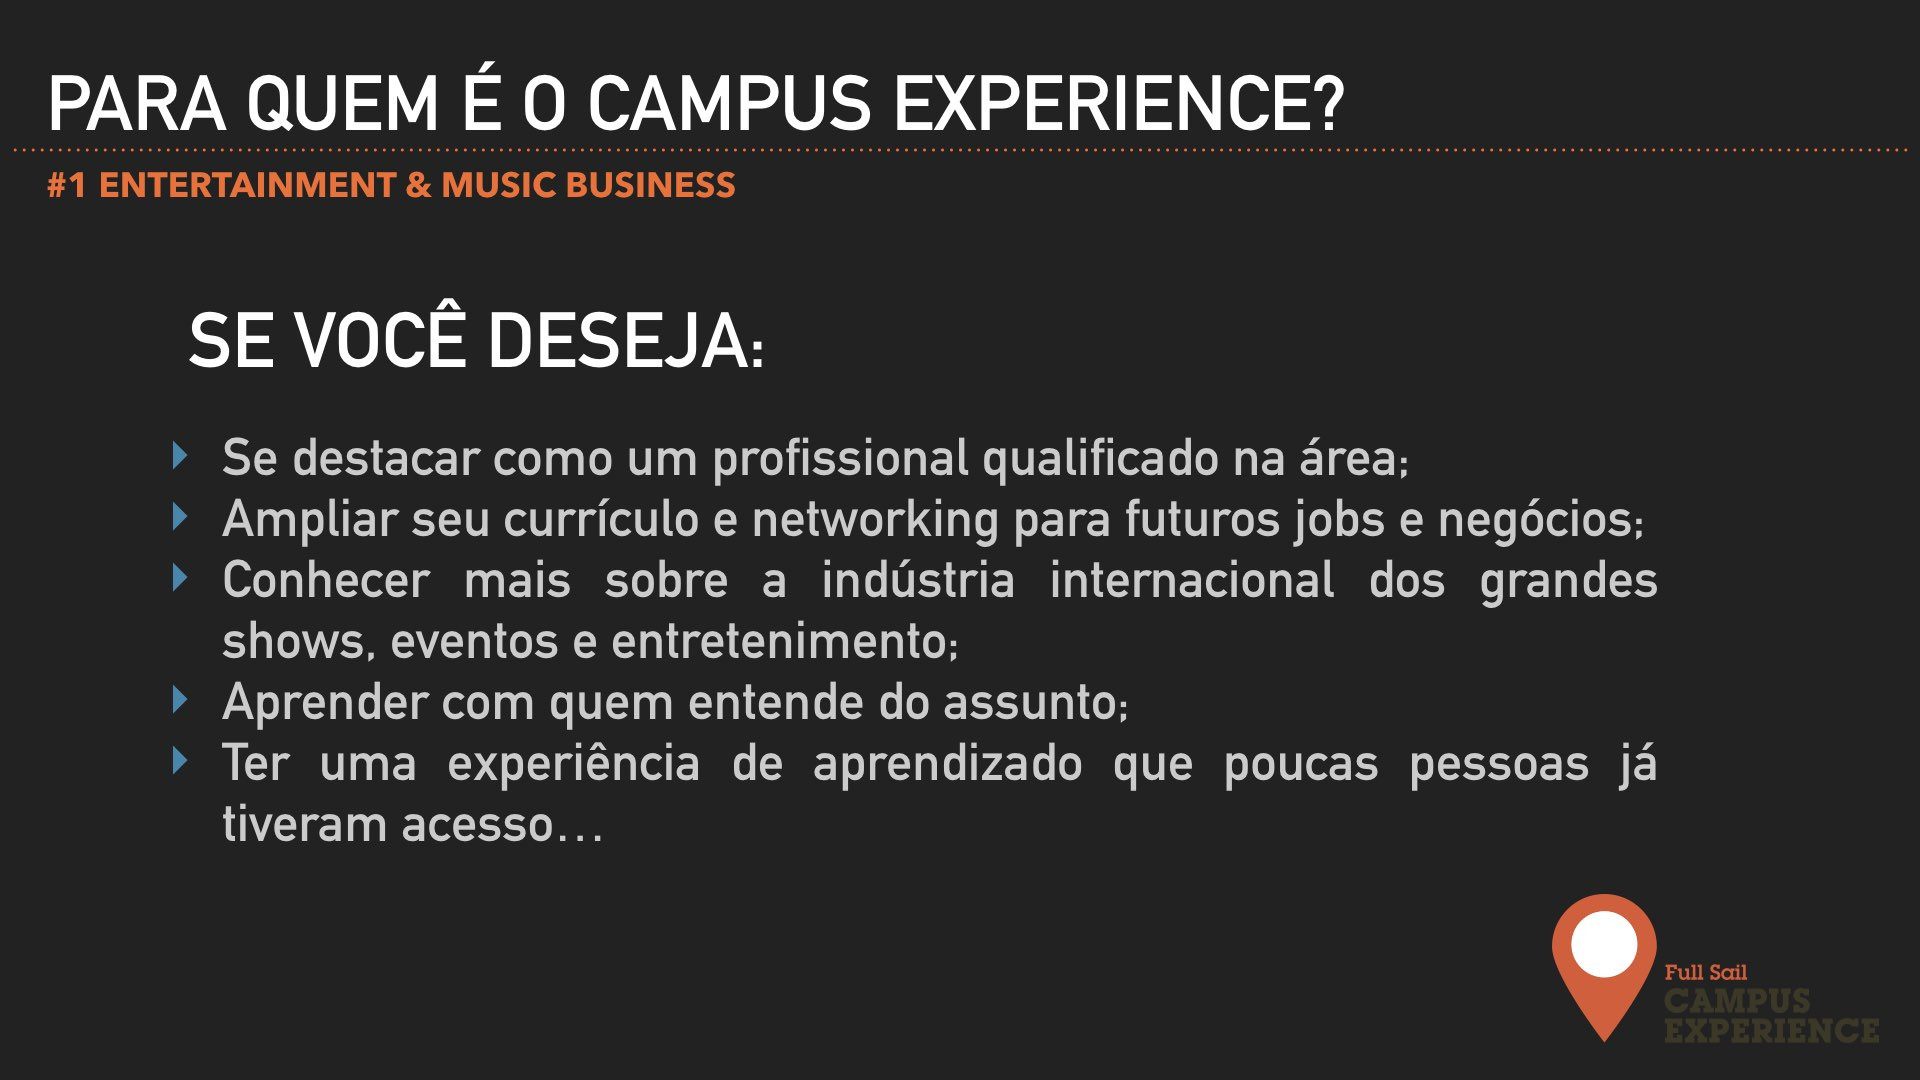 CAMPUS EXPERIENCE ENTERTAINMENT 2